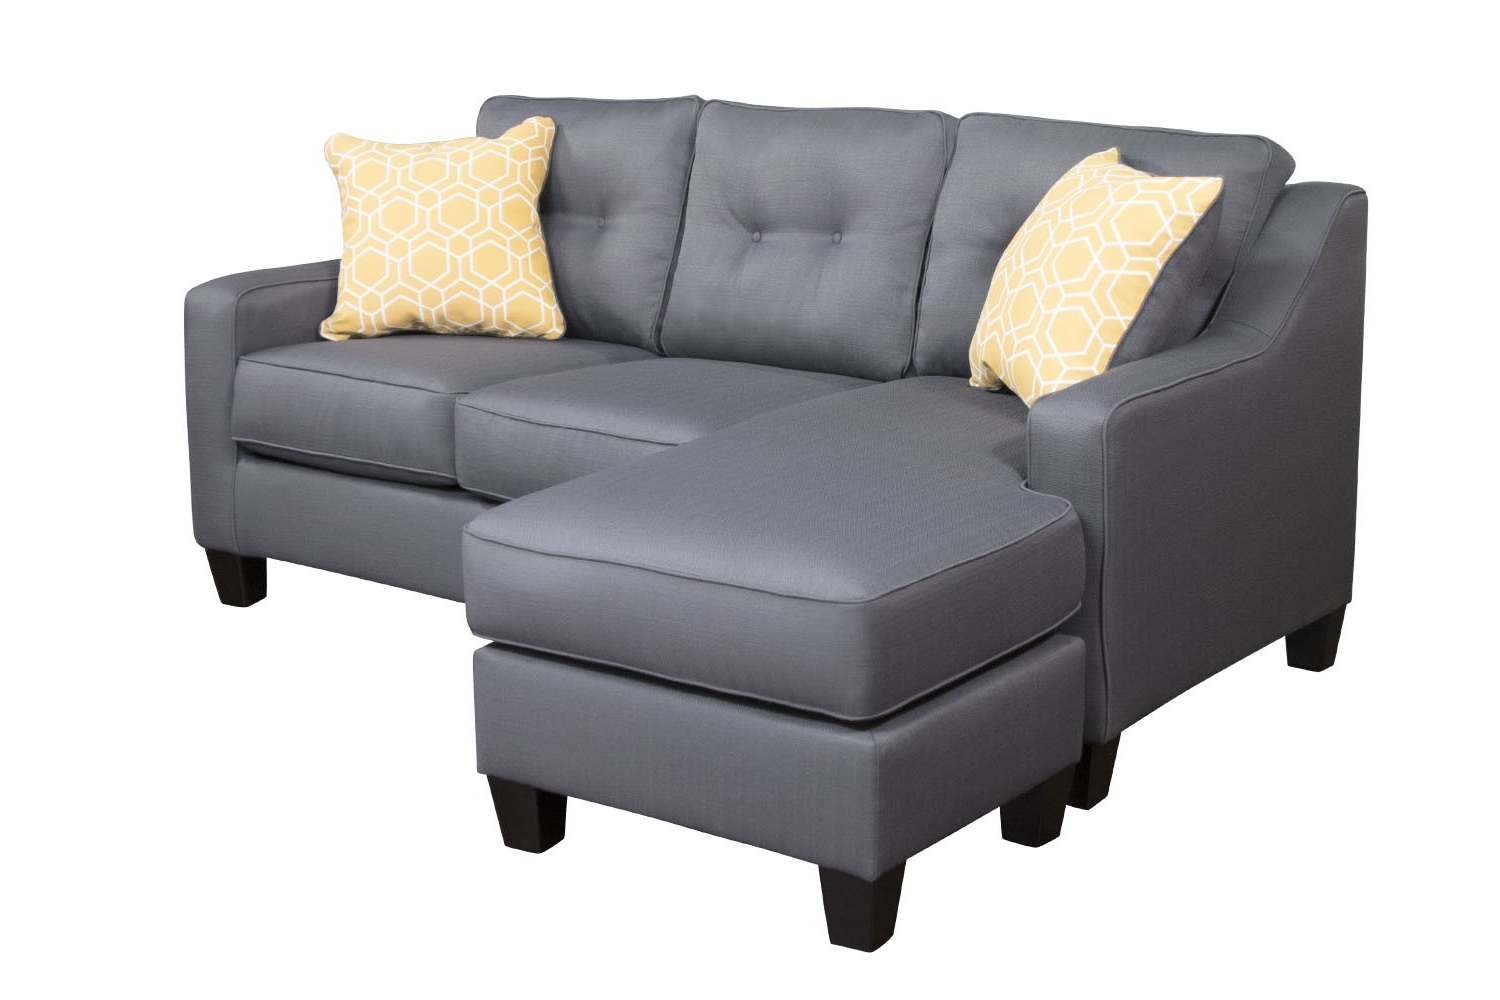 Aldie Gray Sofa Chaise (View 2 of 15)